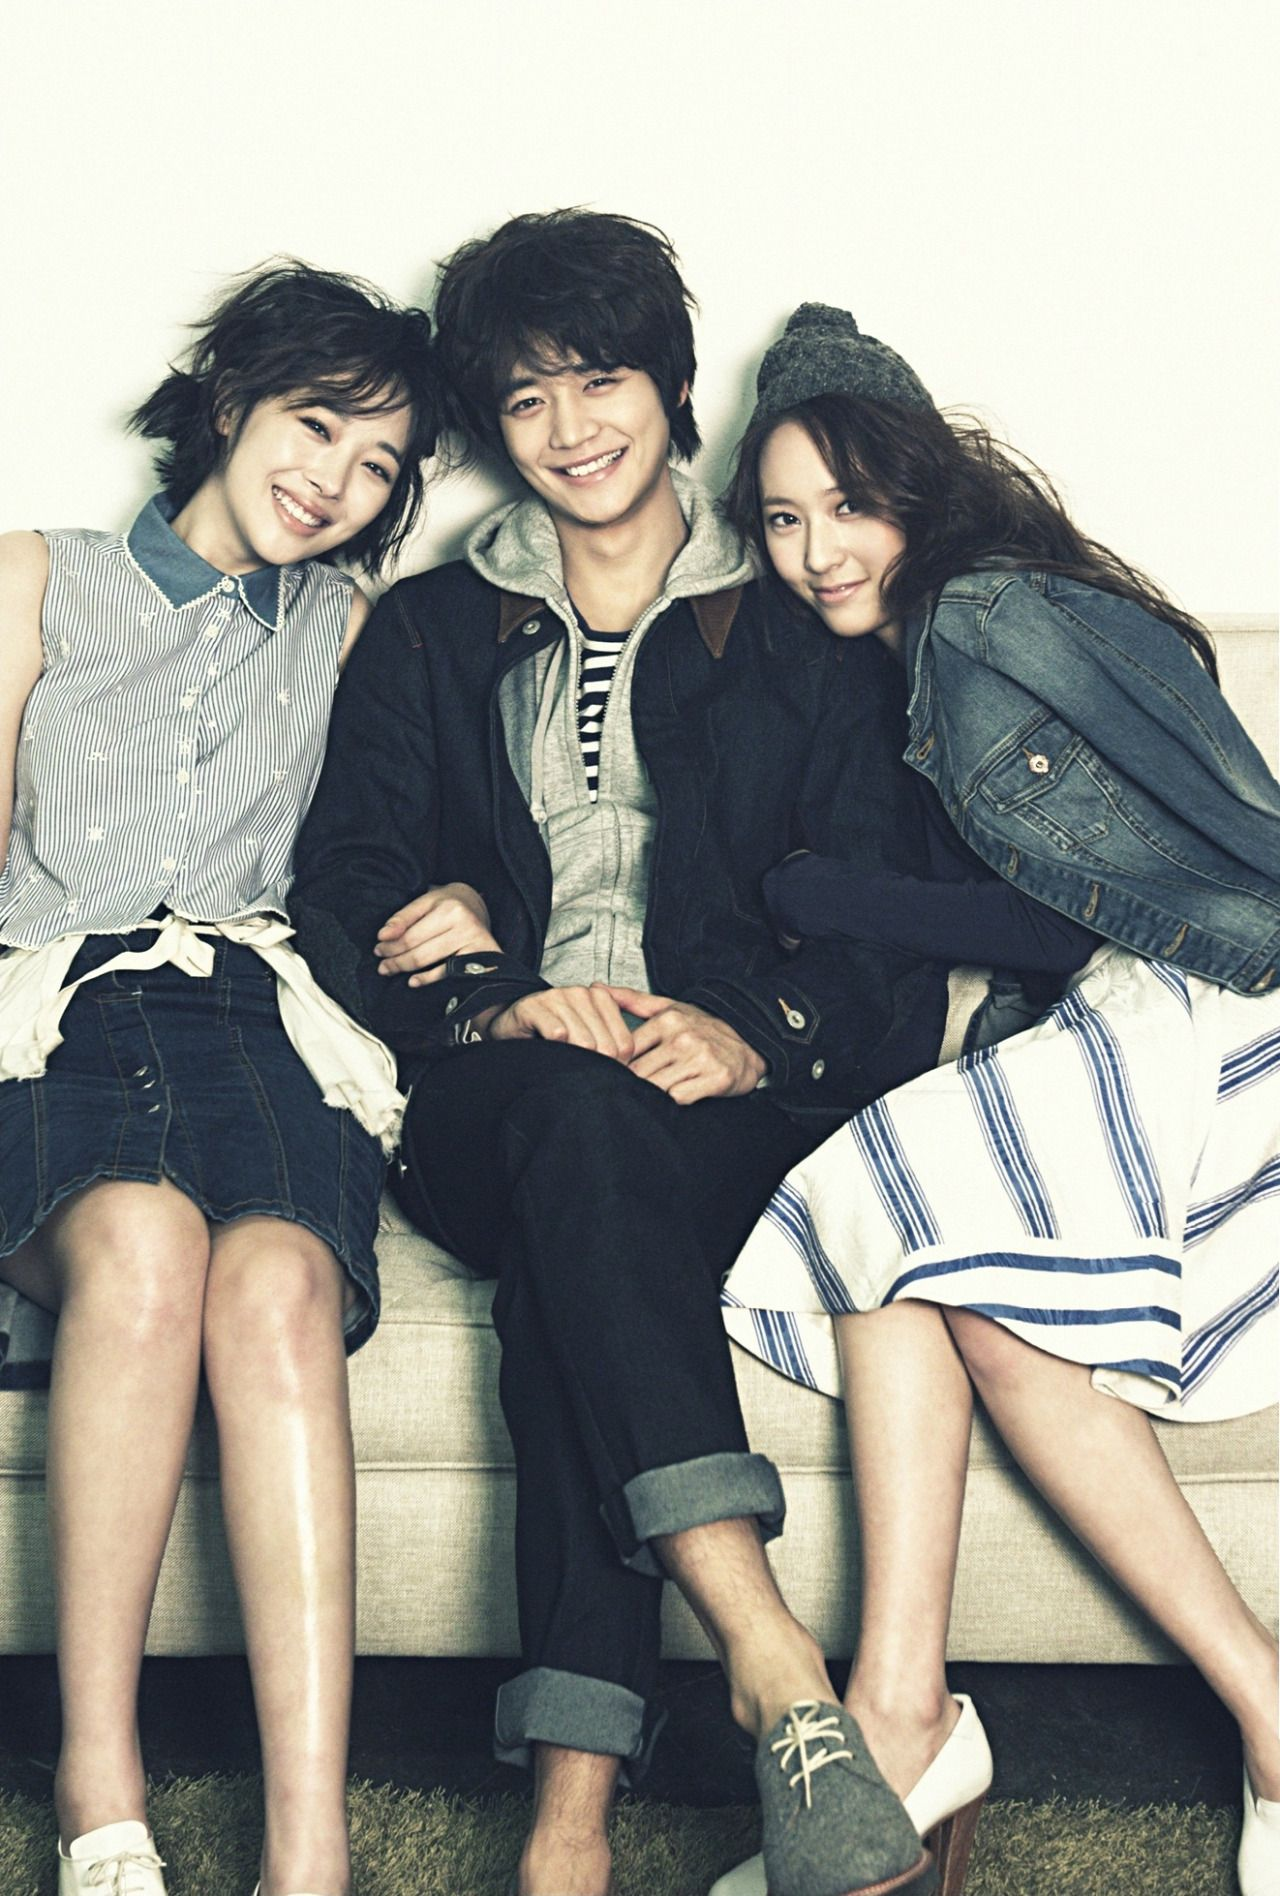 Choi minho dan krystal fx dating